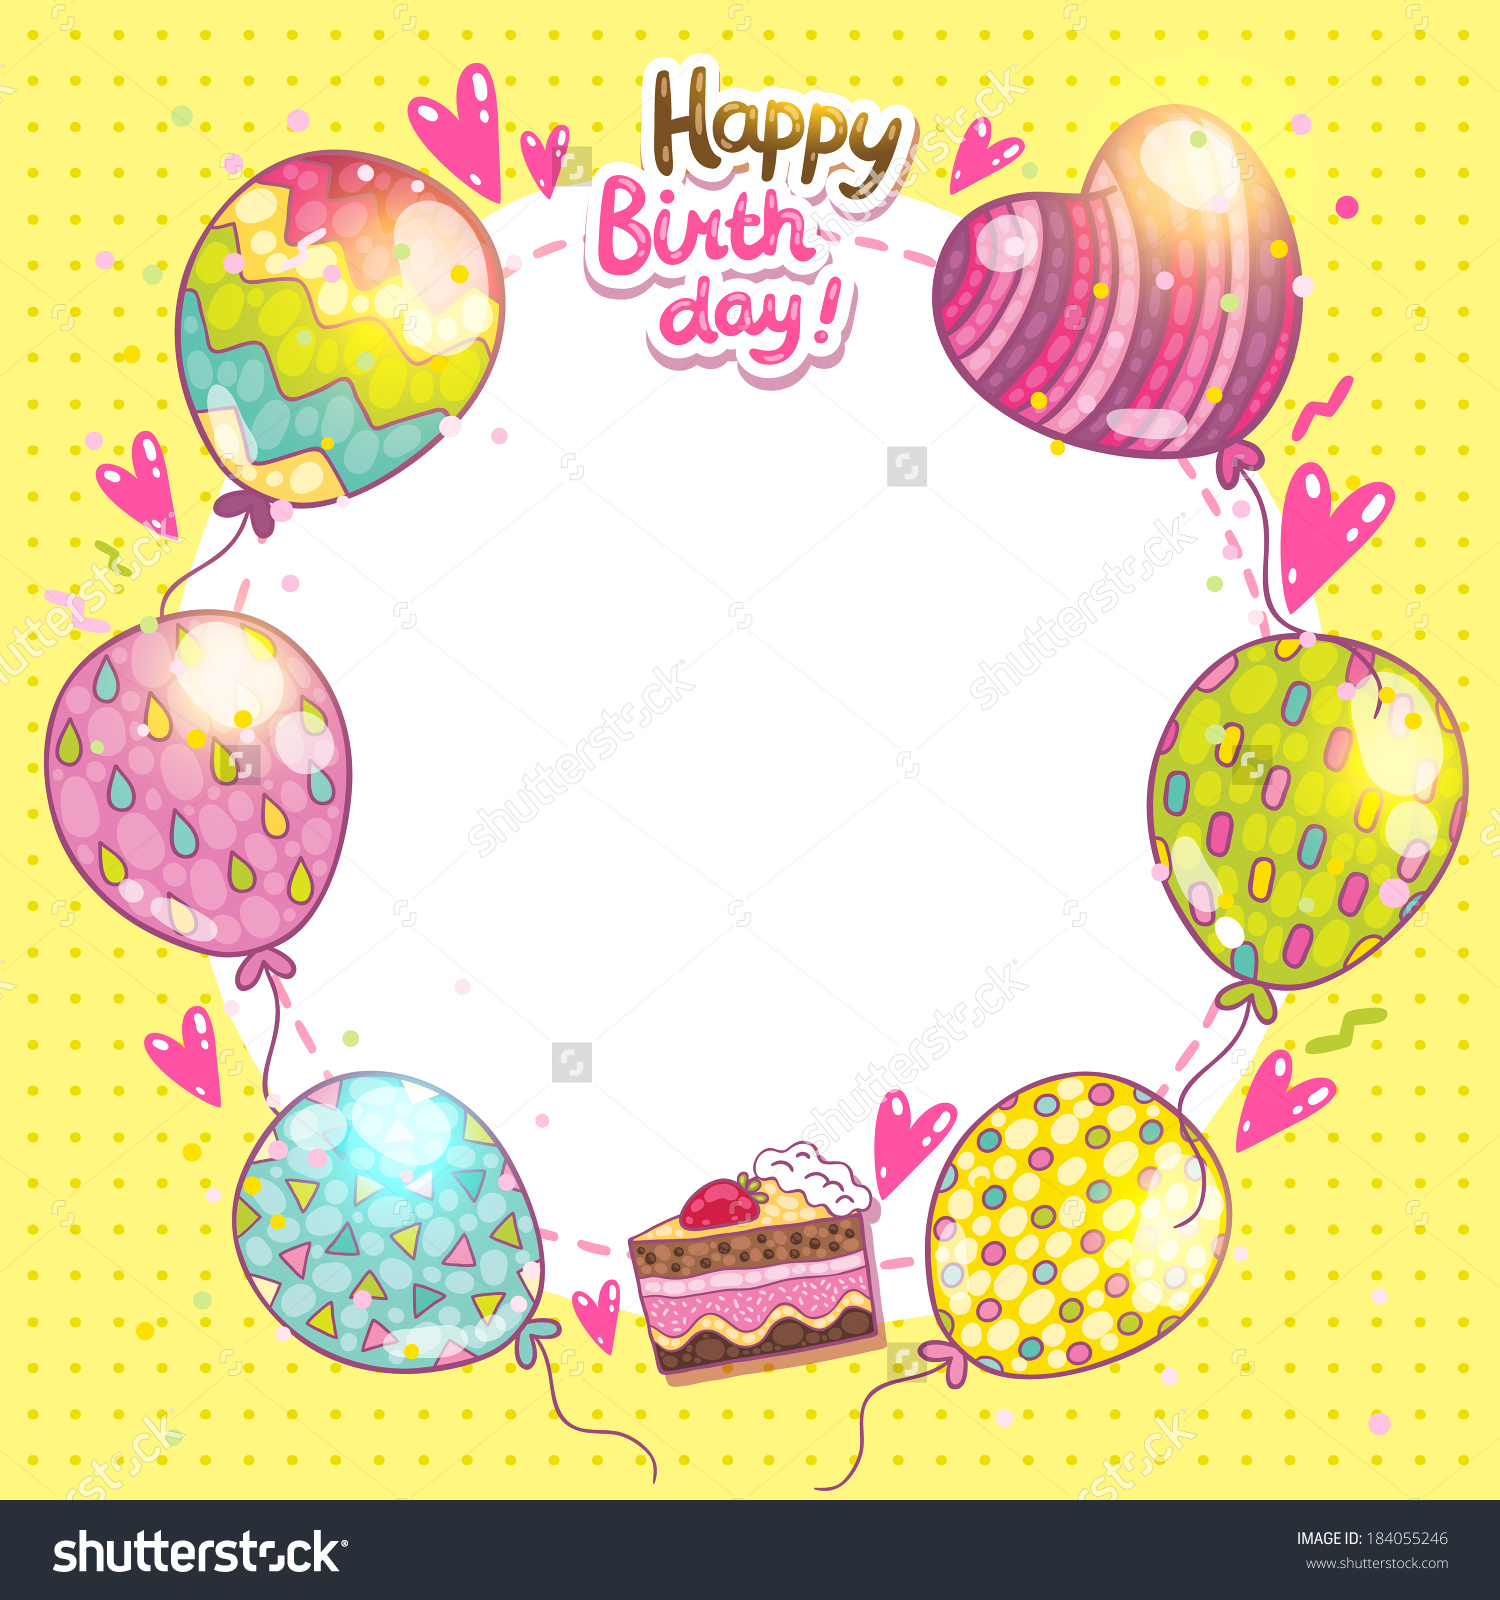 birthday card background with cake and ballloons